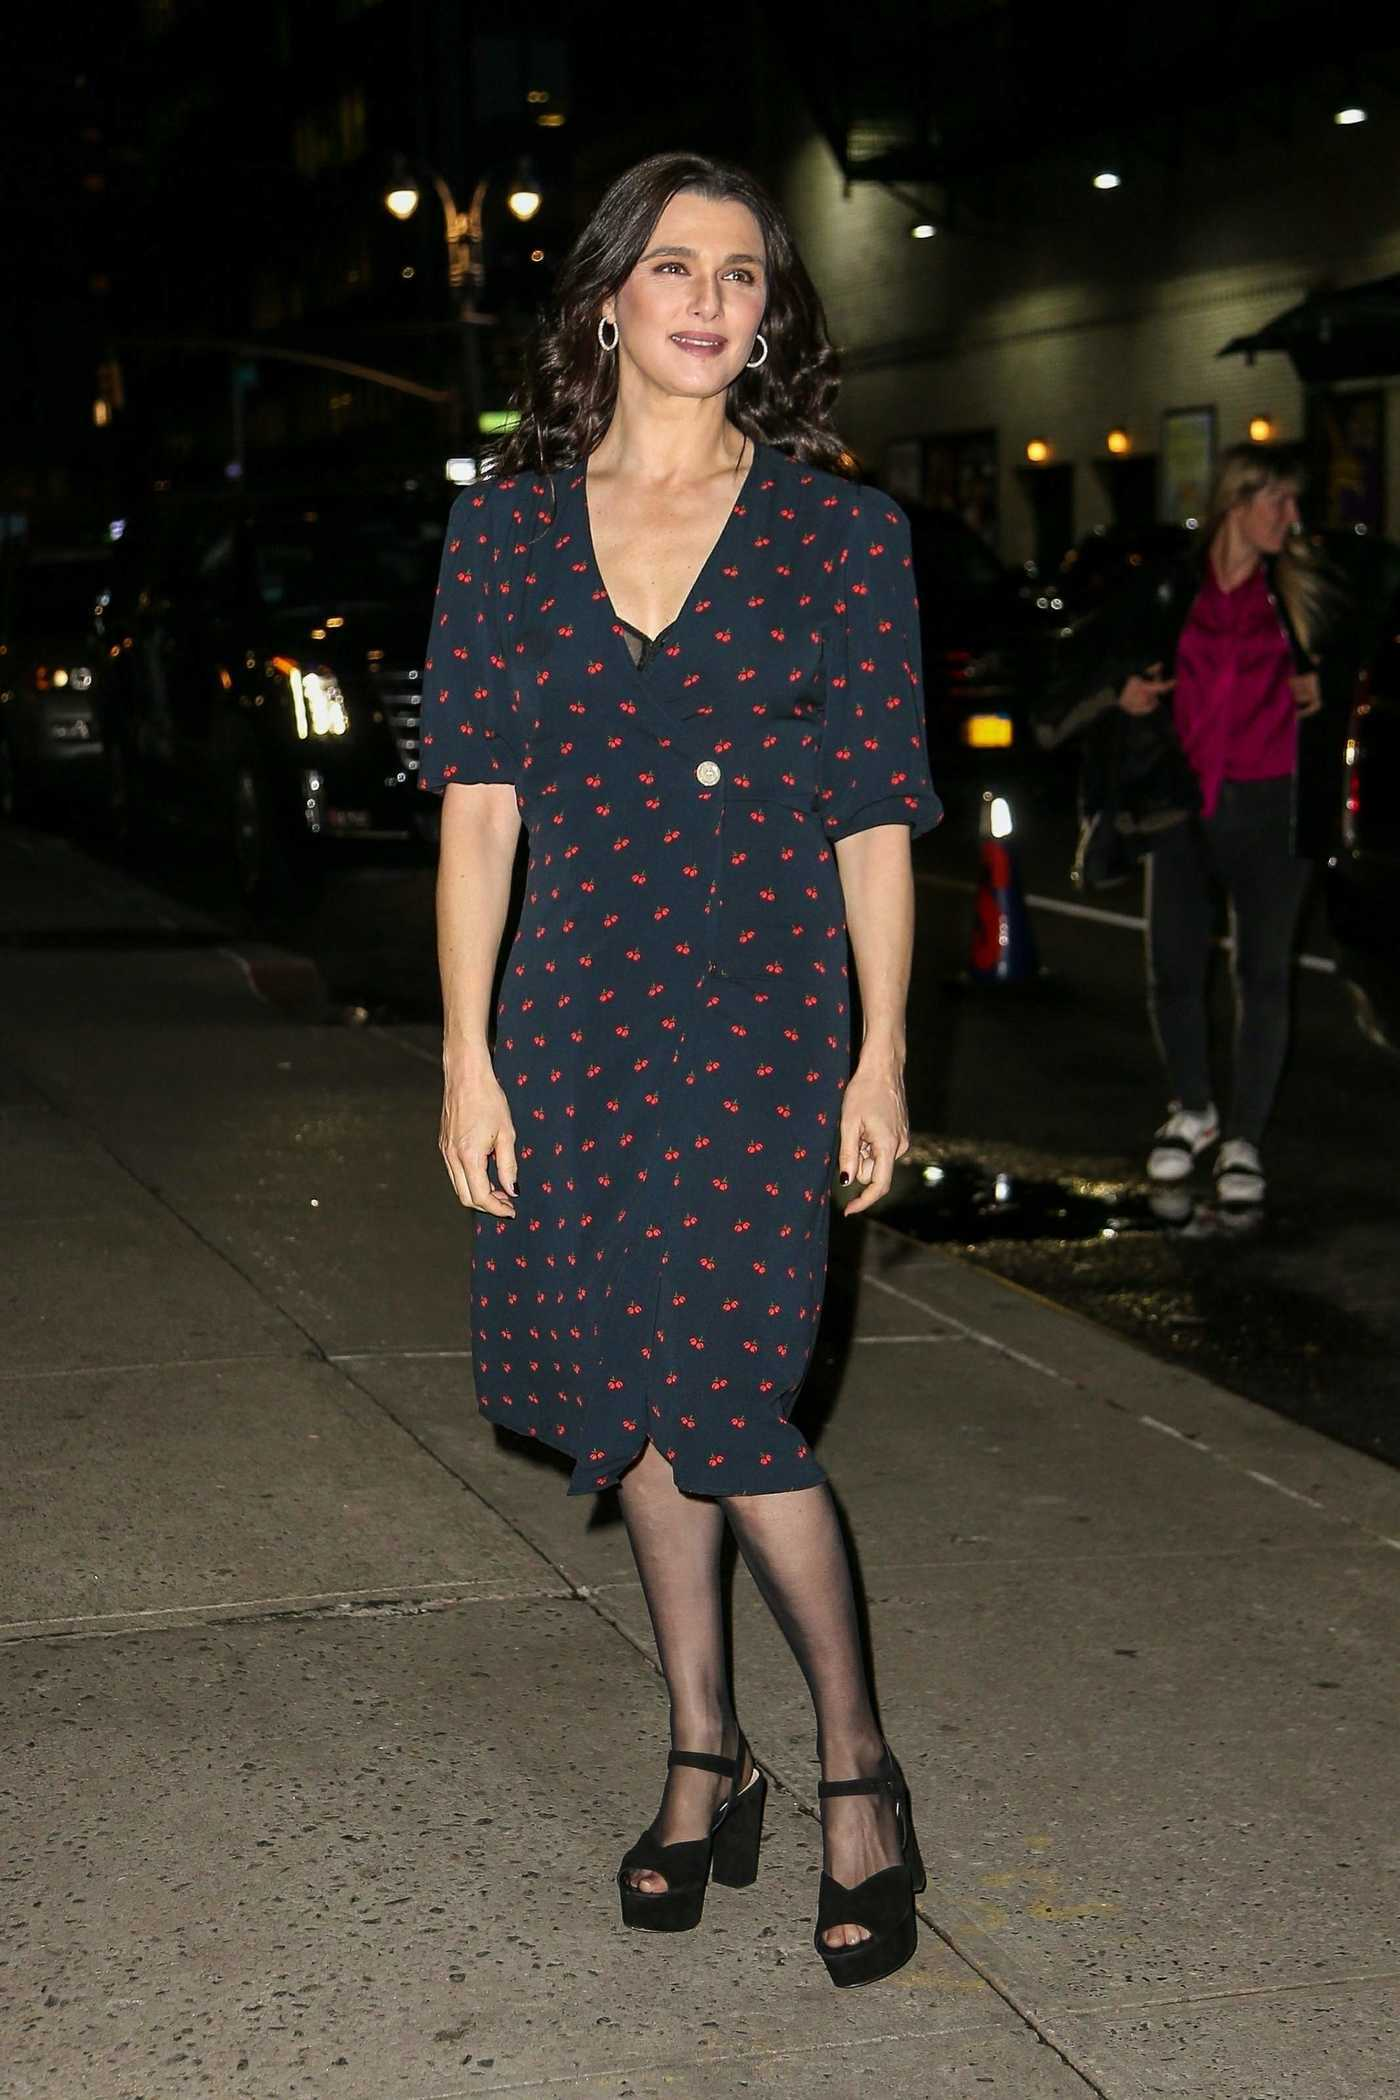 Rachel Weisz in a Black Dress Leaves the Late Show with Stephen Colbert in New York 11/13/2018